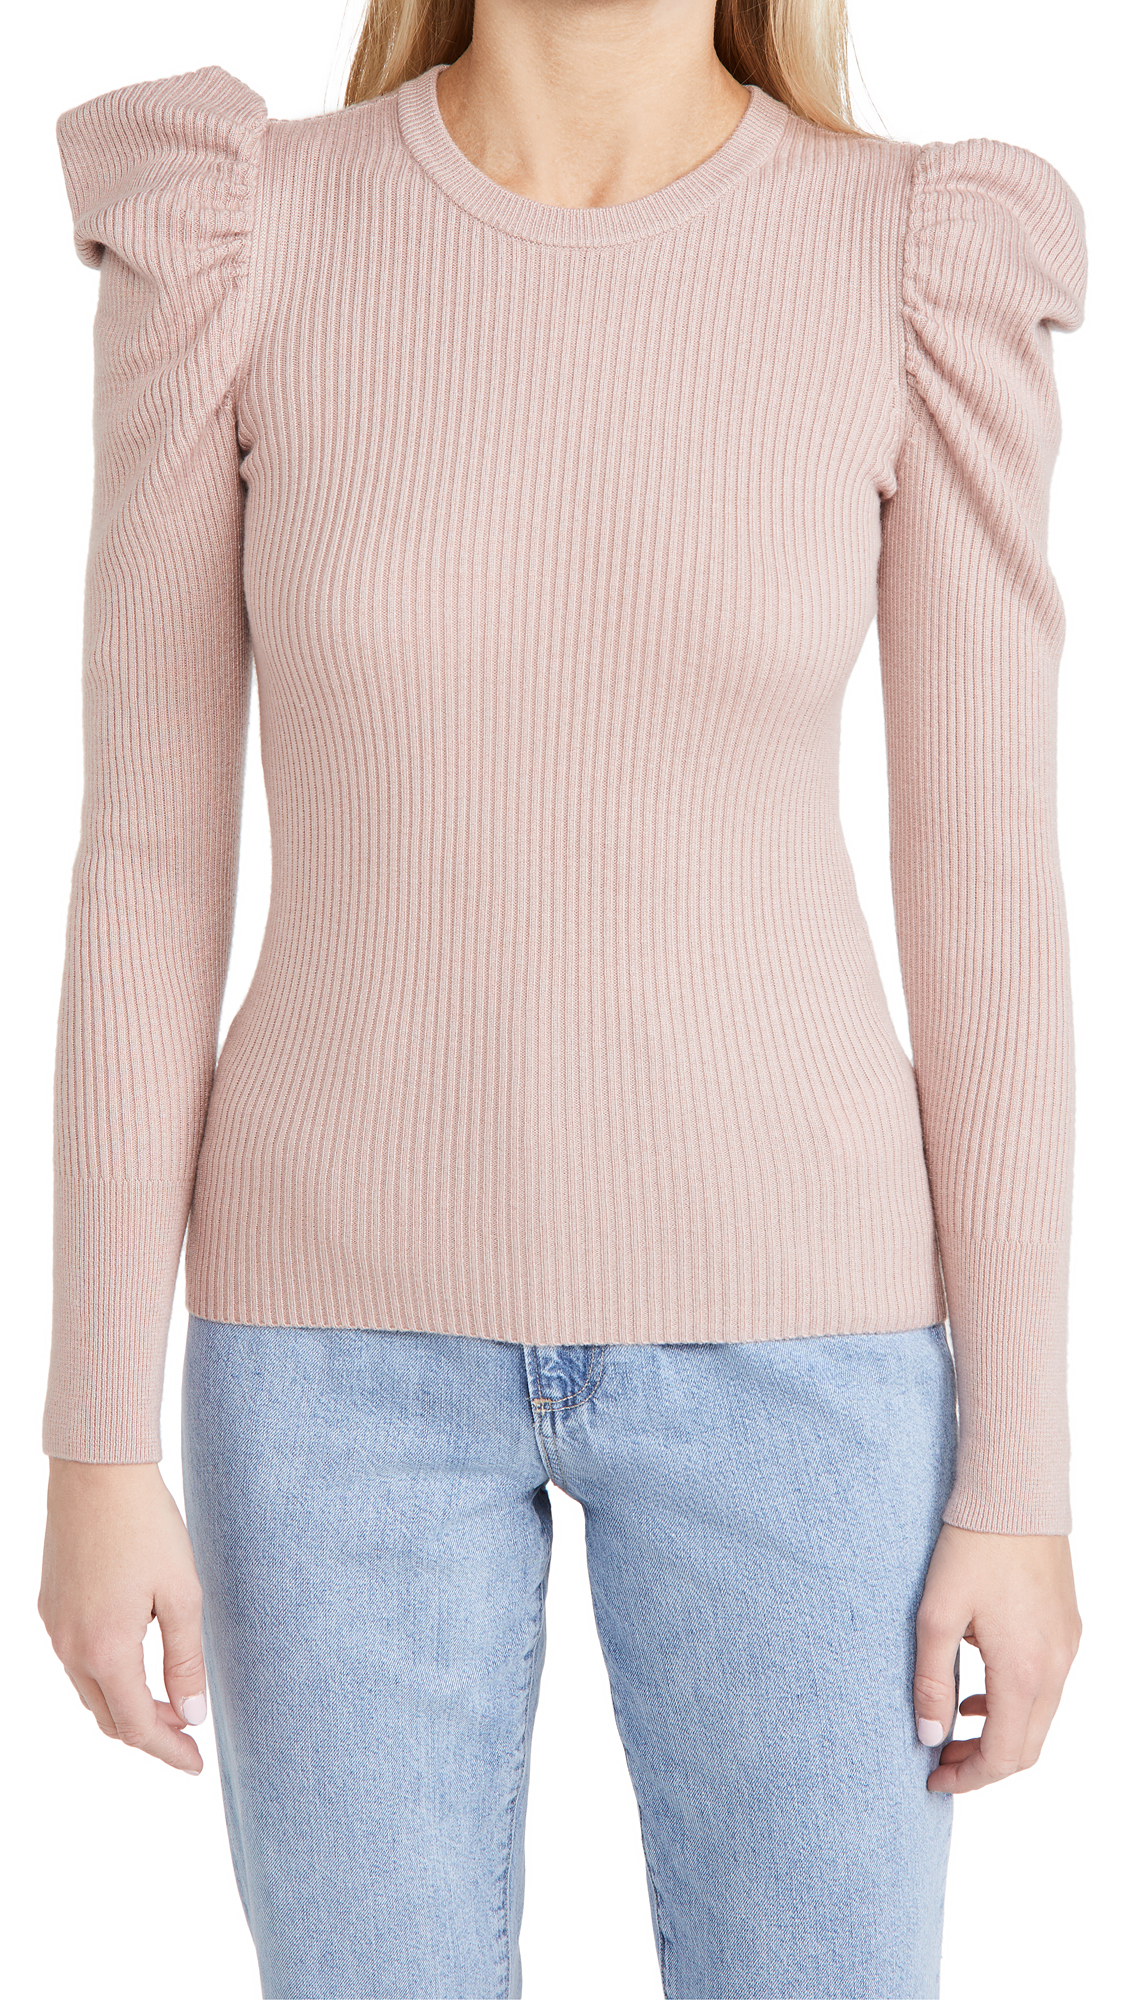 7 For All Mankind Puff Crew Neck Sweater